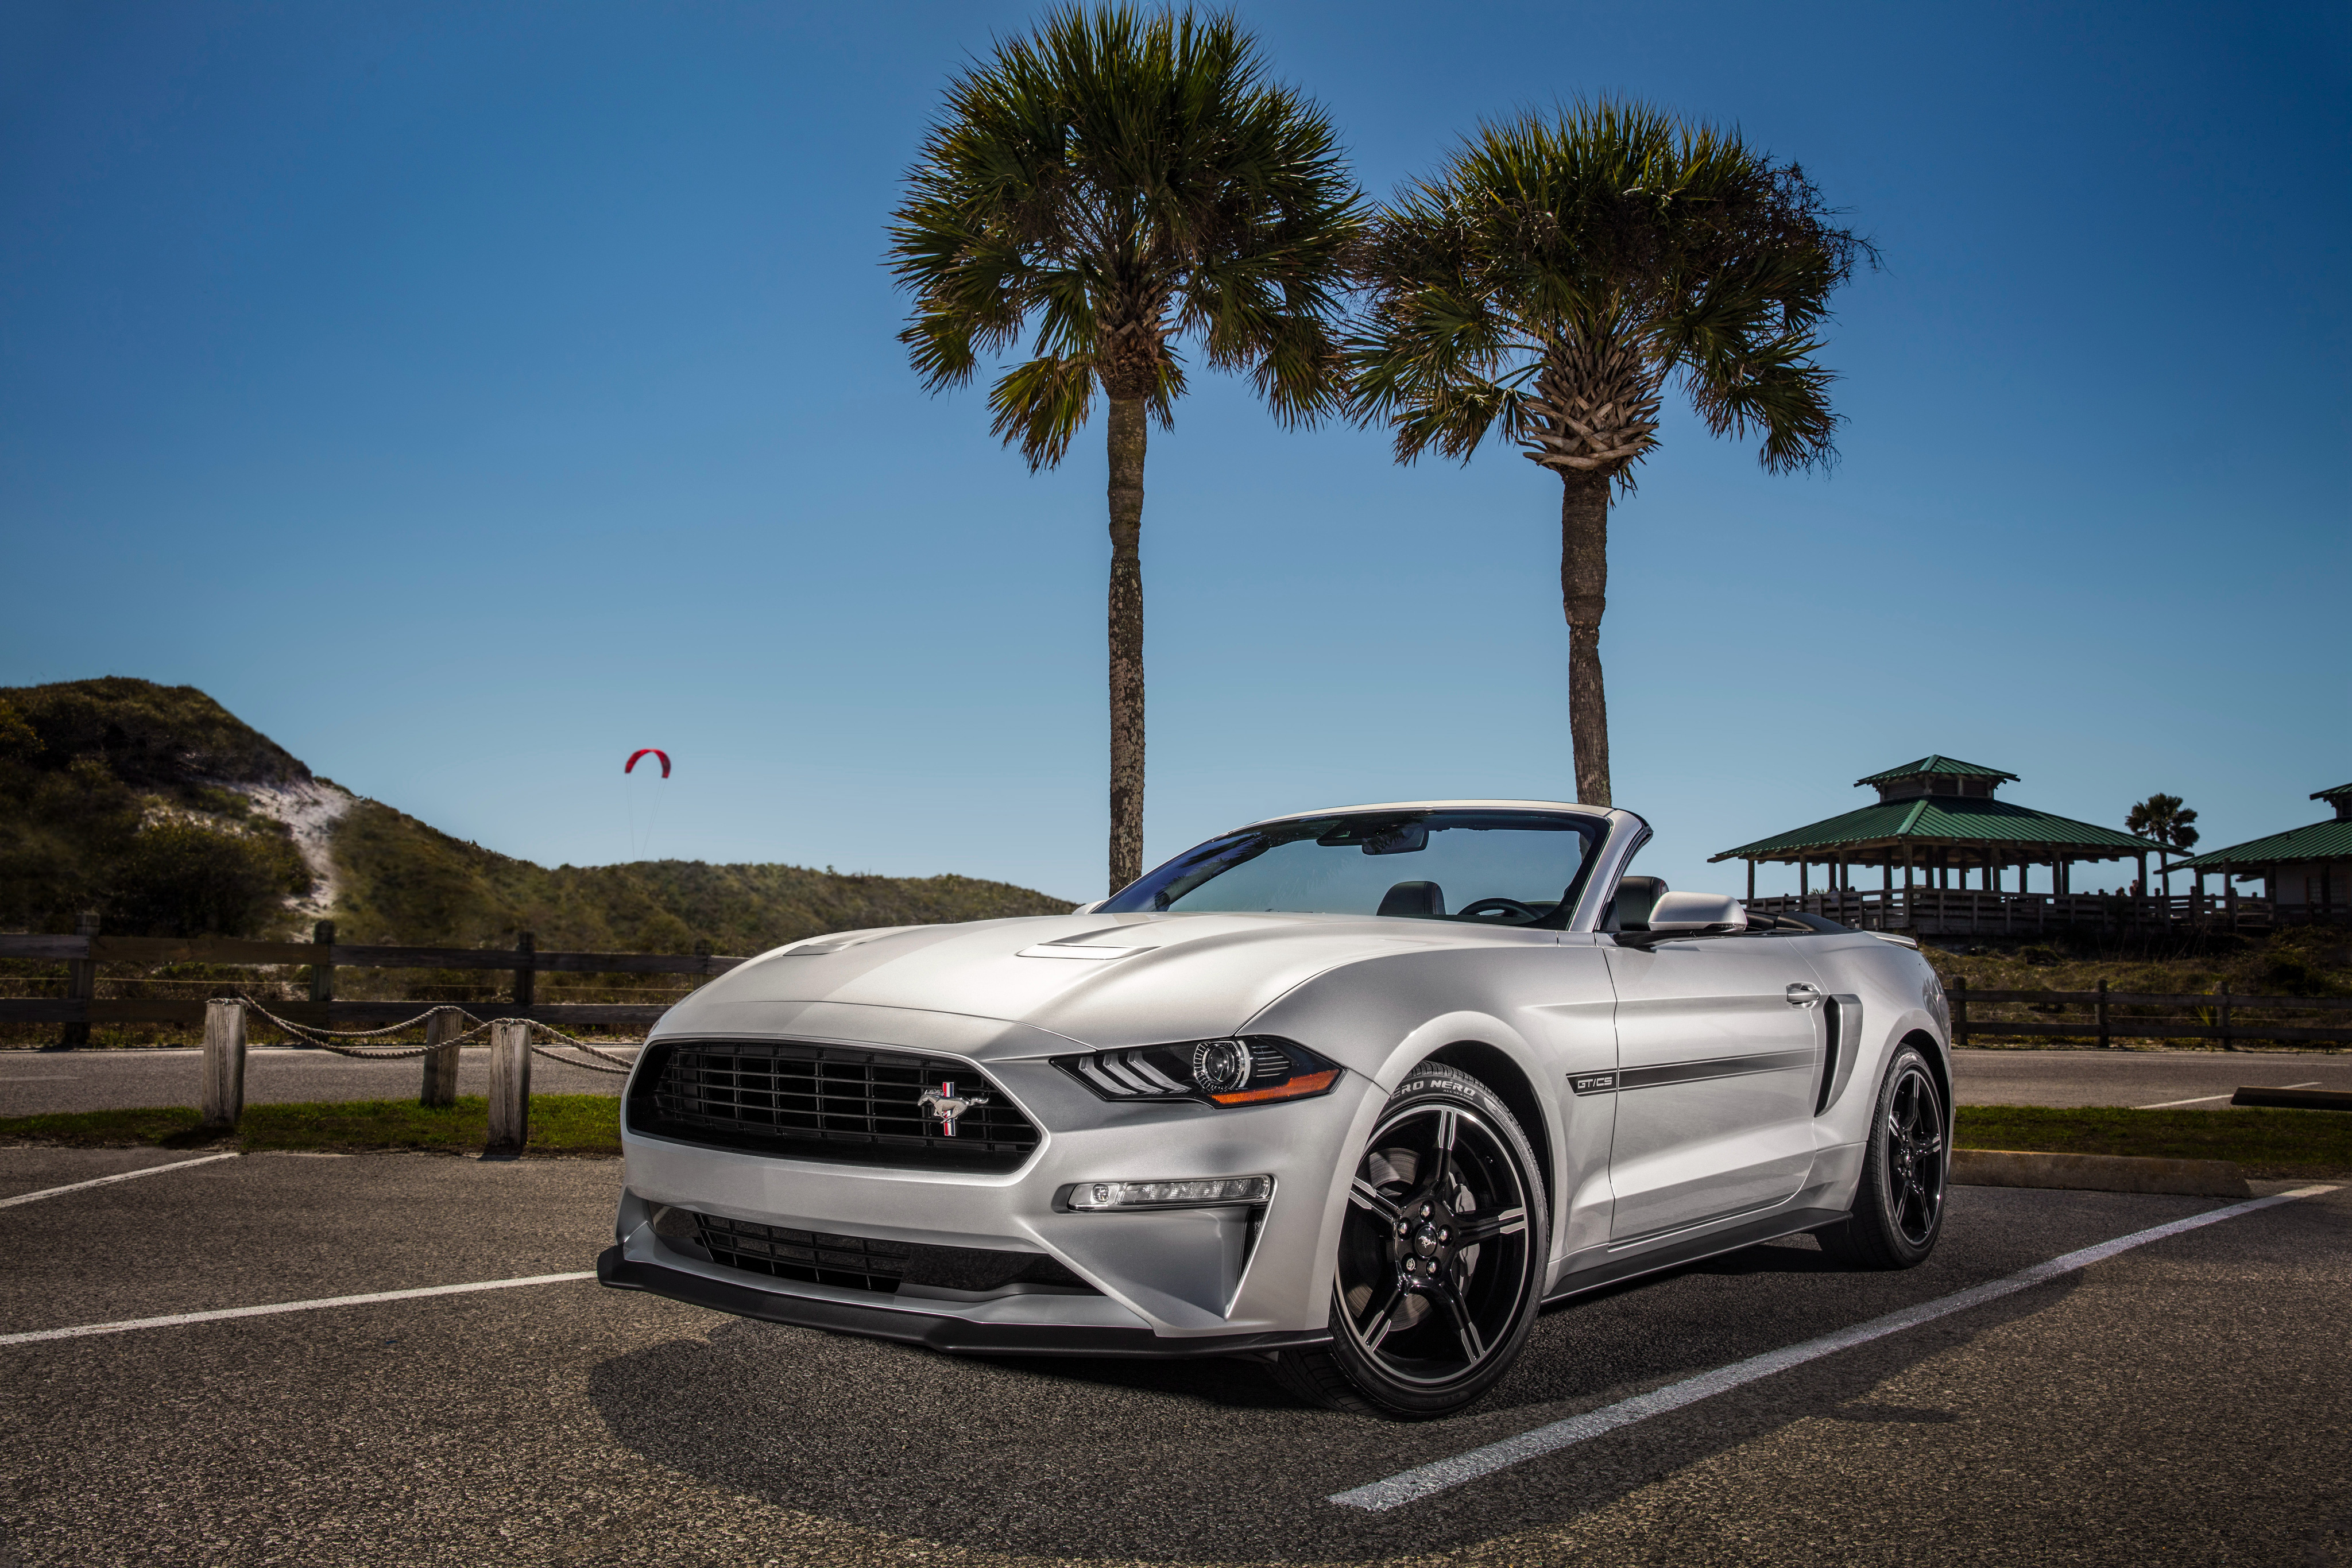 2019 Ford Mustang GT Convertible, HD Cars, 4k Wallpapers ...